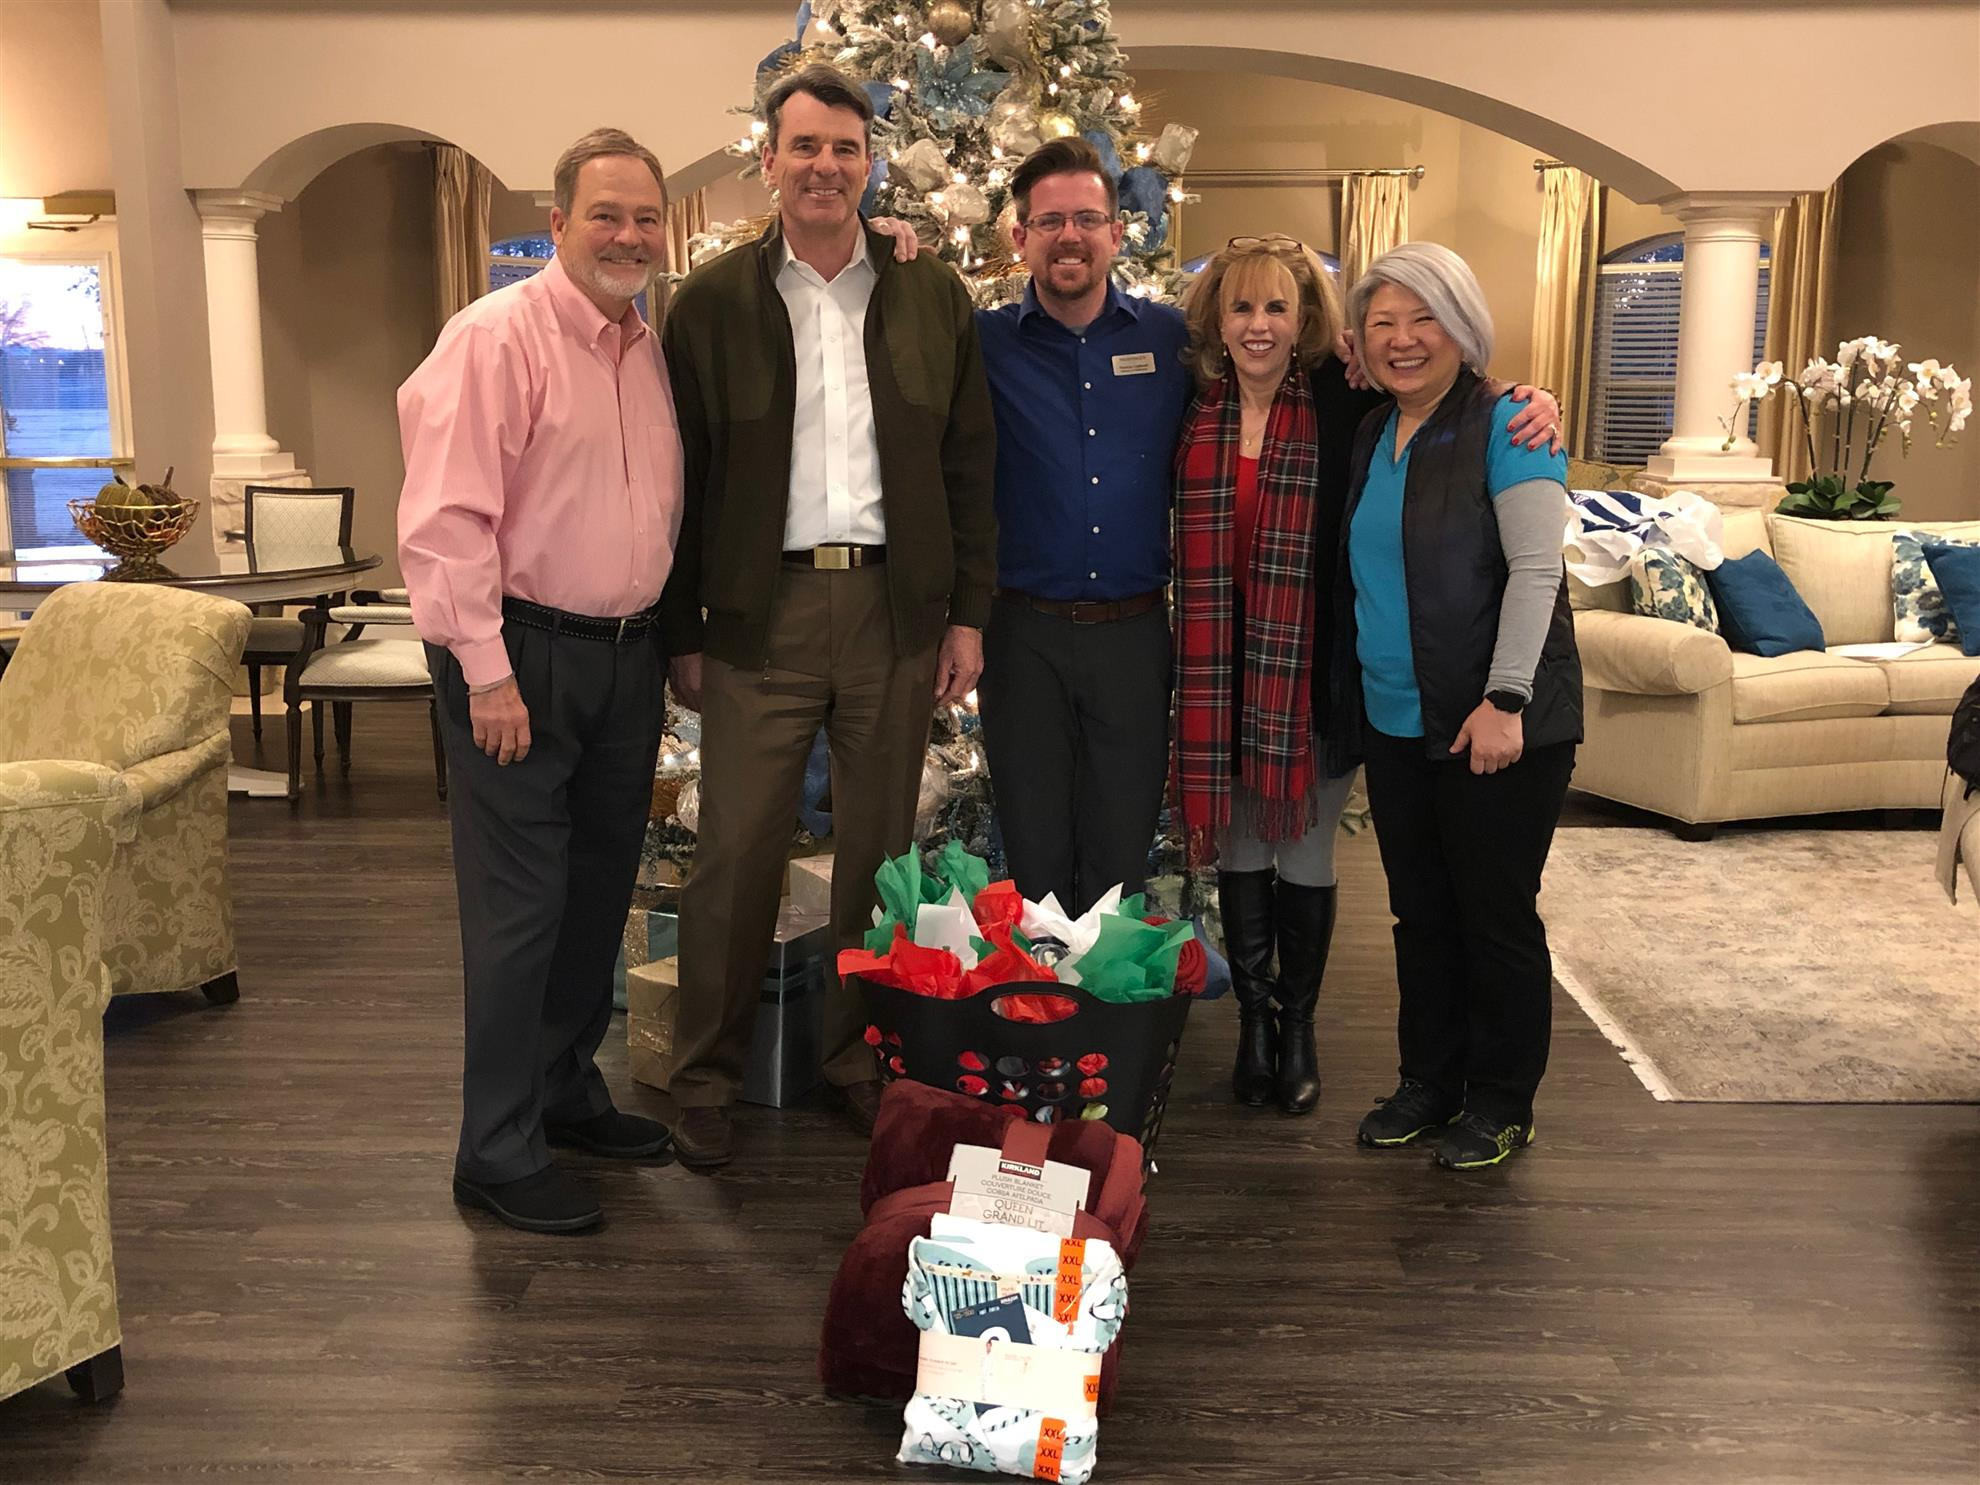 Stories Rotary District 5810 Dallas Resident Colin Stanley Hopes To Win Electric Car Contest This Year The Coppell Club For 2nd Adopted 5 Needy Seniors From Metrocrest Services Holiday We Appointed Team Captains